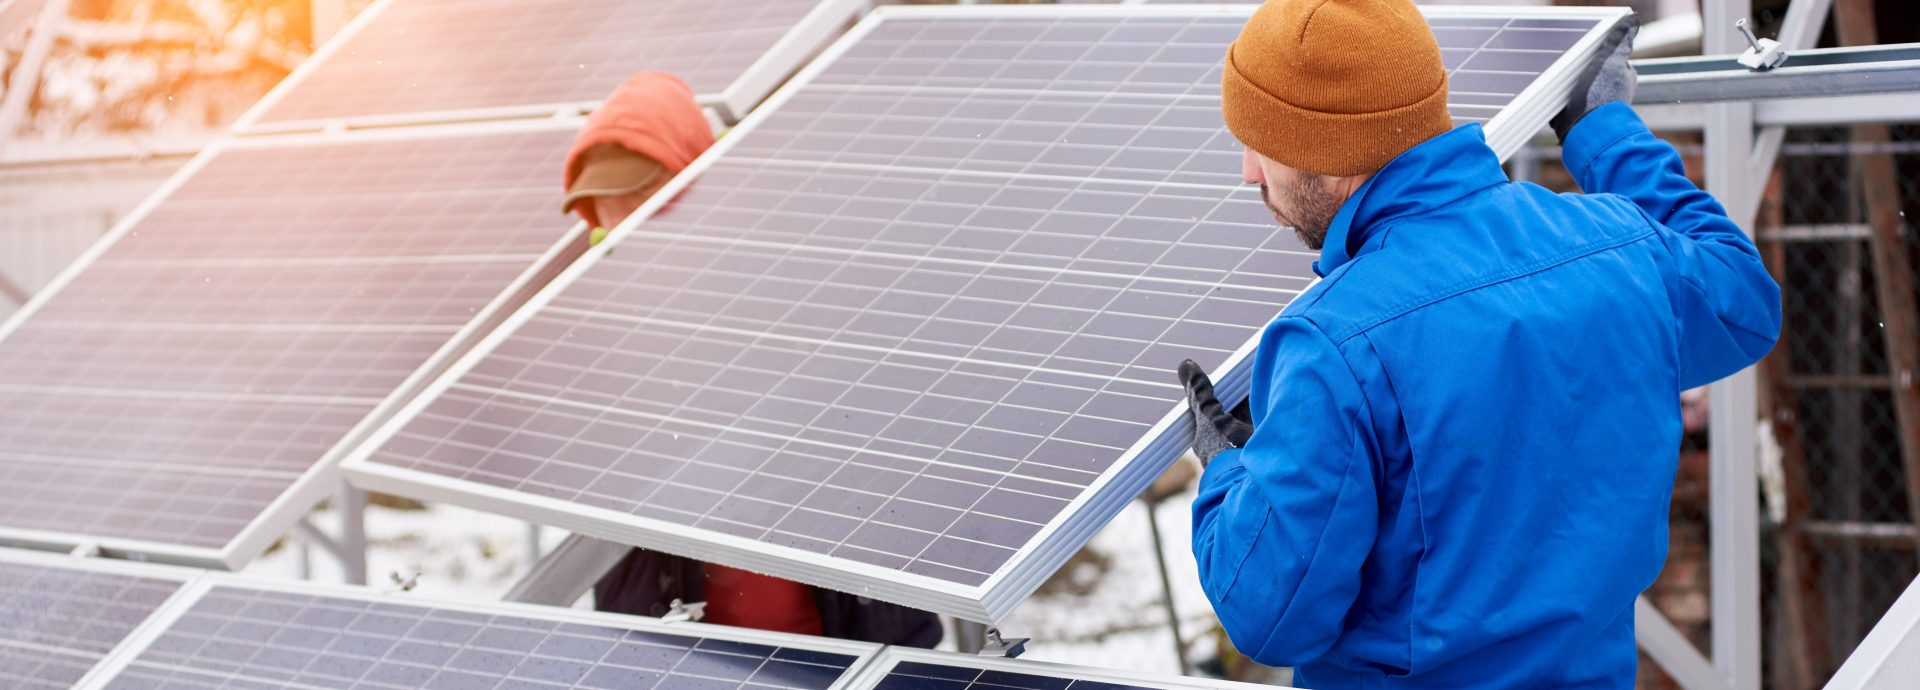 A solar energy company serving PA and Maryland.